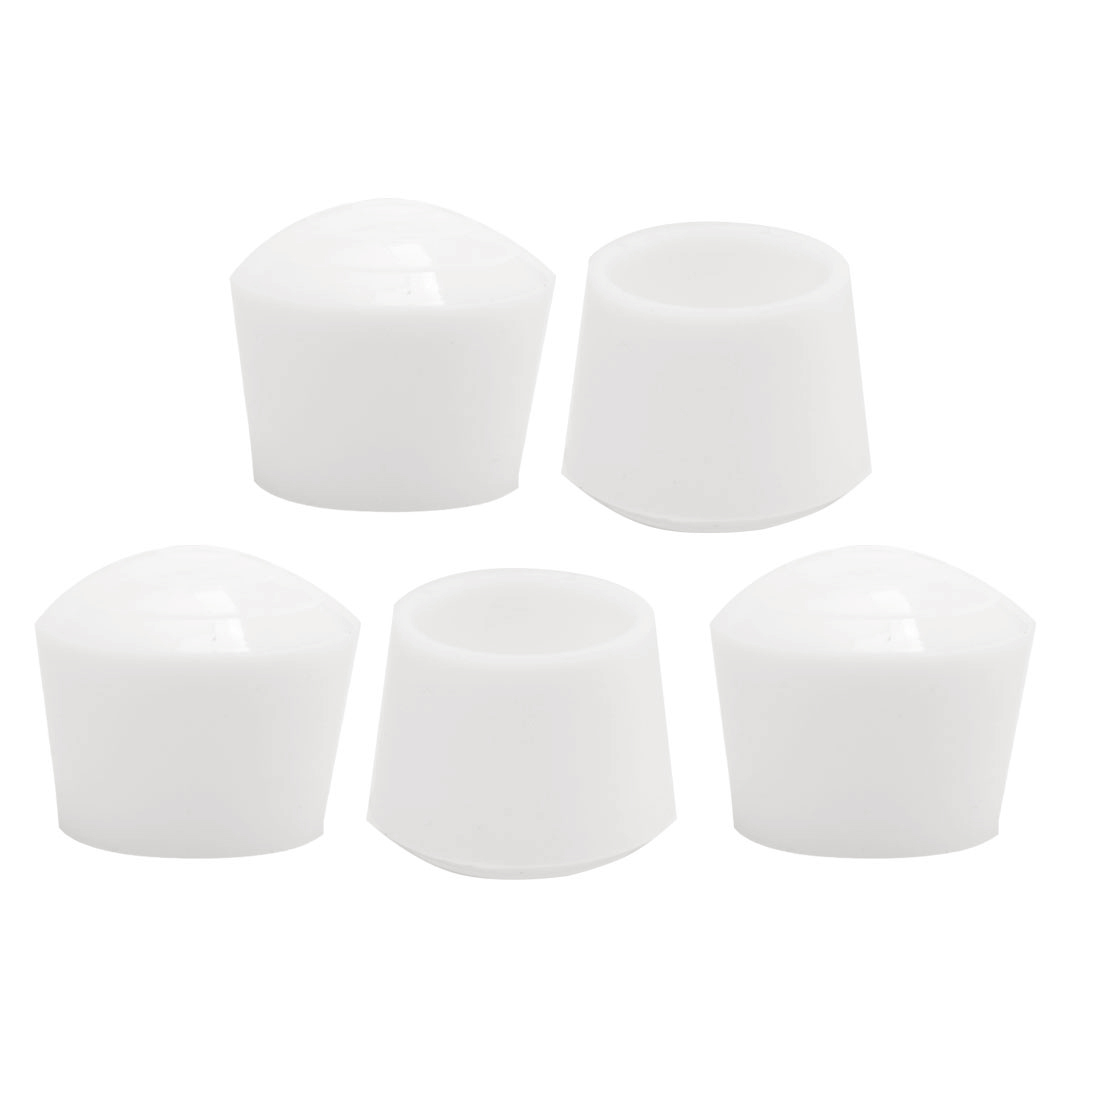 "Rubber Leg Caps Tip Cup Feet Cover 25mm 1"" Inner Dia 5pcs for Furniture Chair"